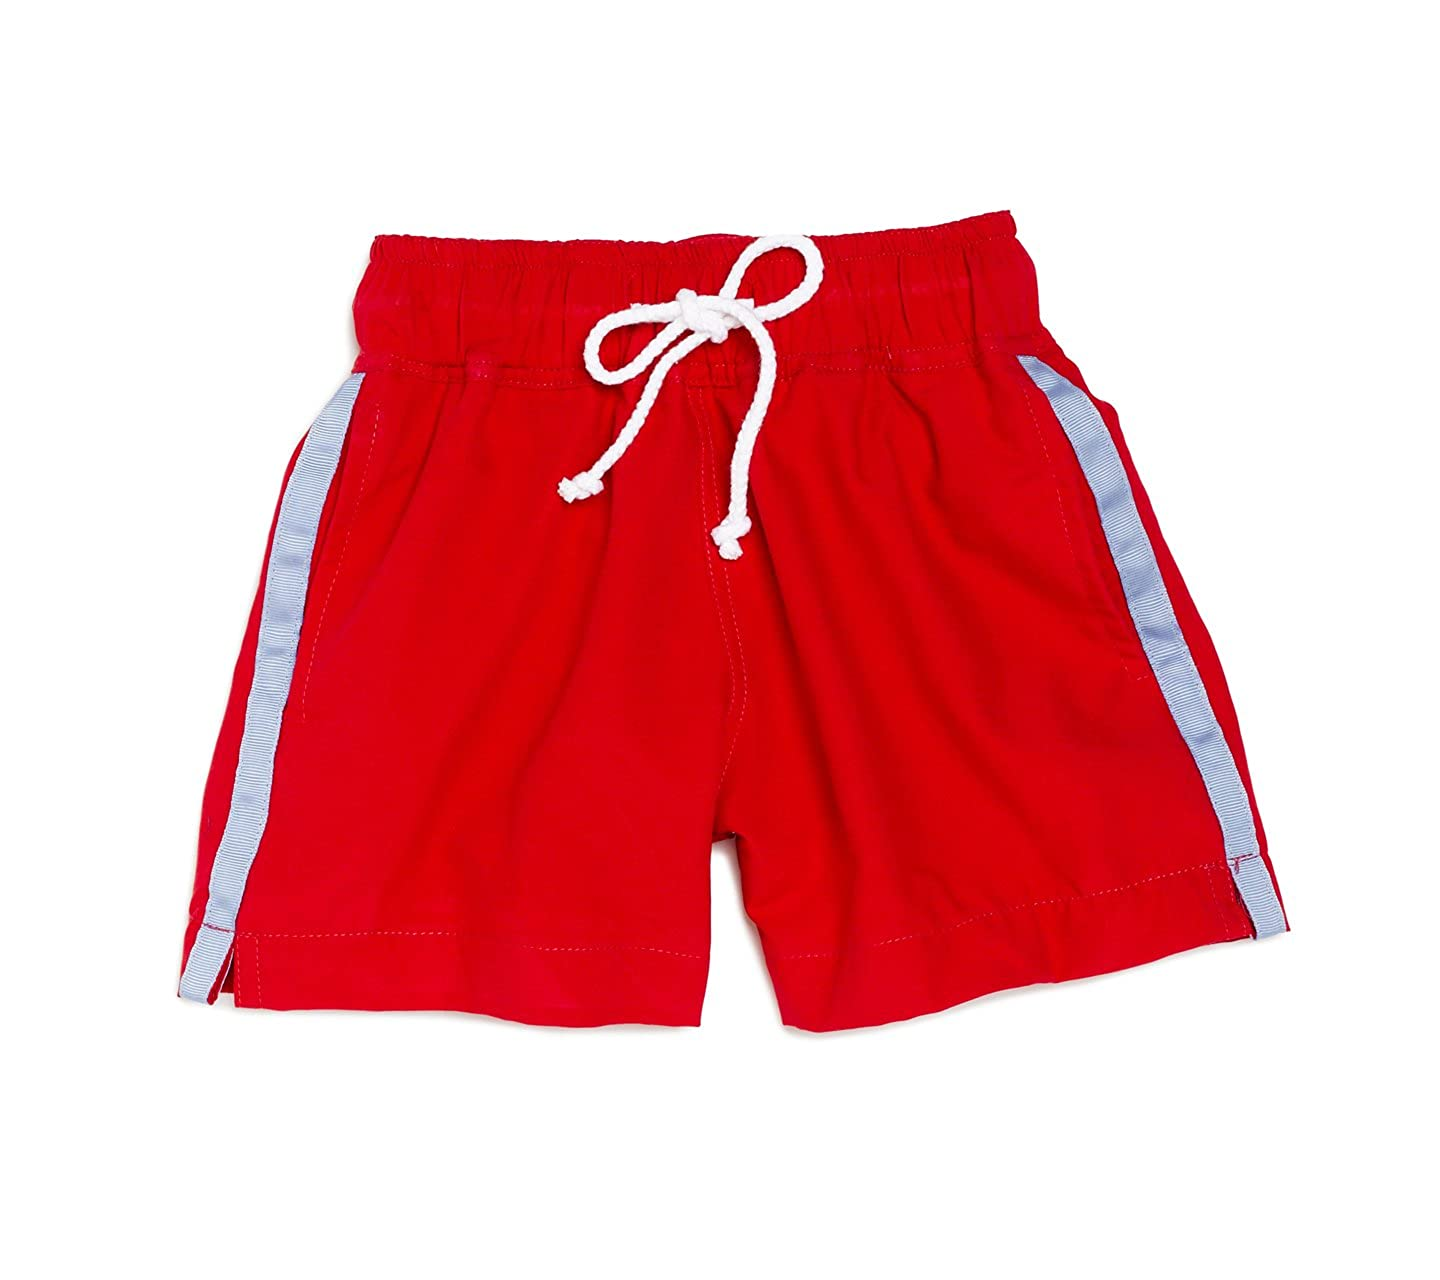 Busy Bees Baby Swim Trunks Elastic Waistband Red